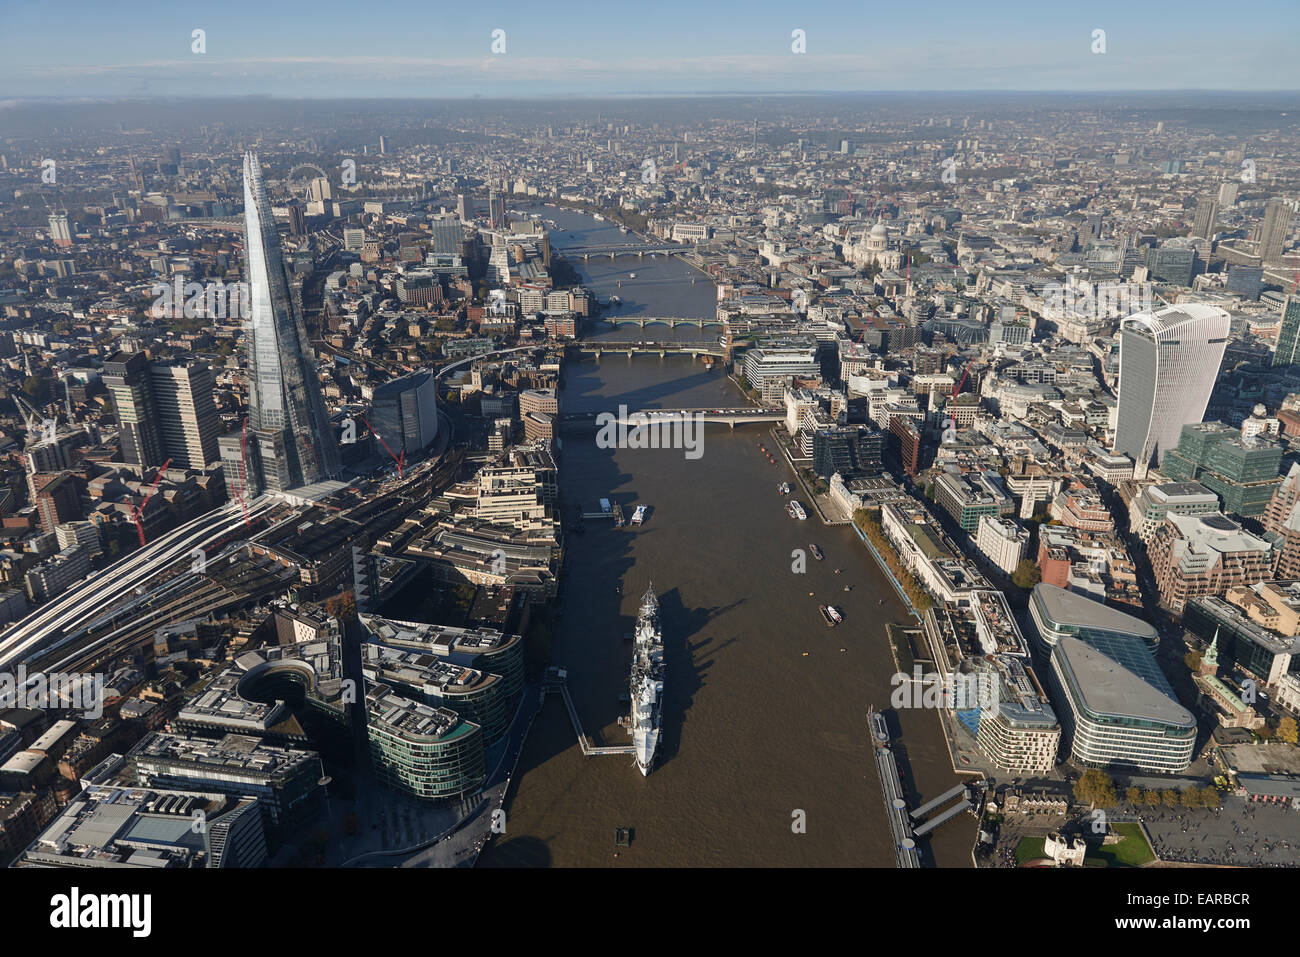 An aerial view looking down the River Thames with HMS Belfast in the foreground and the Shard visible - Stock Image